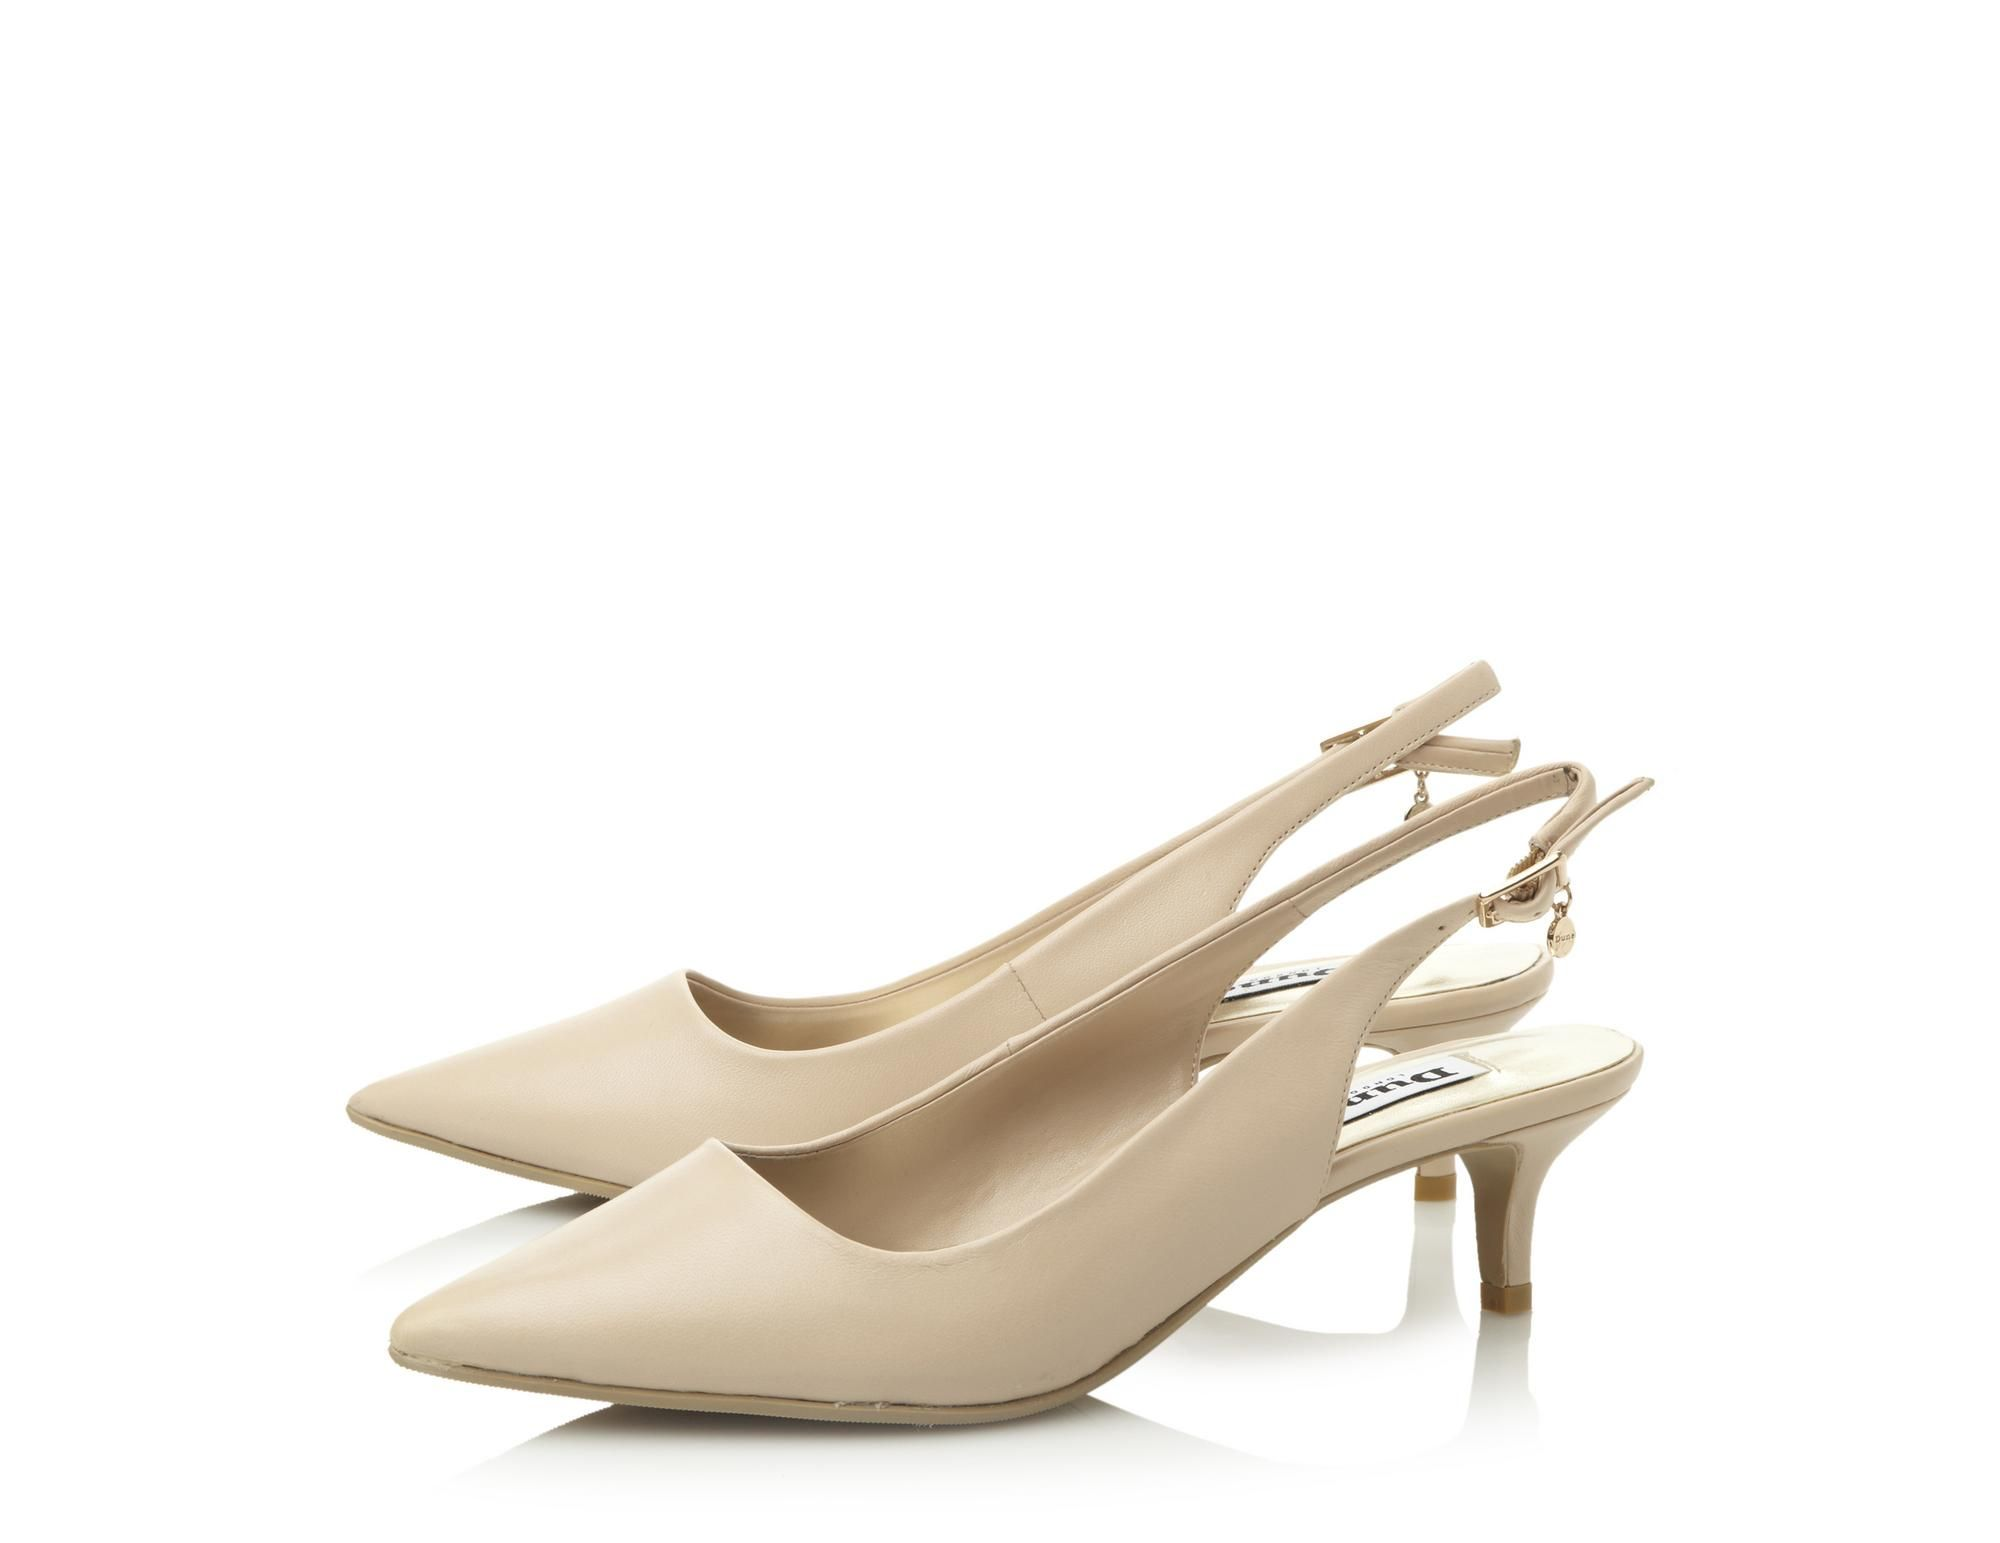 Dune Ladies CATHRYNE Kitten Heel Slingback Court Shoe in Nude Size ...